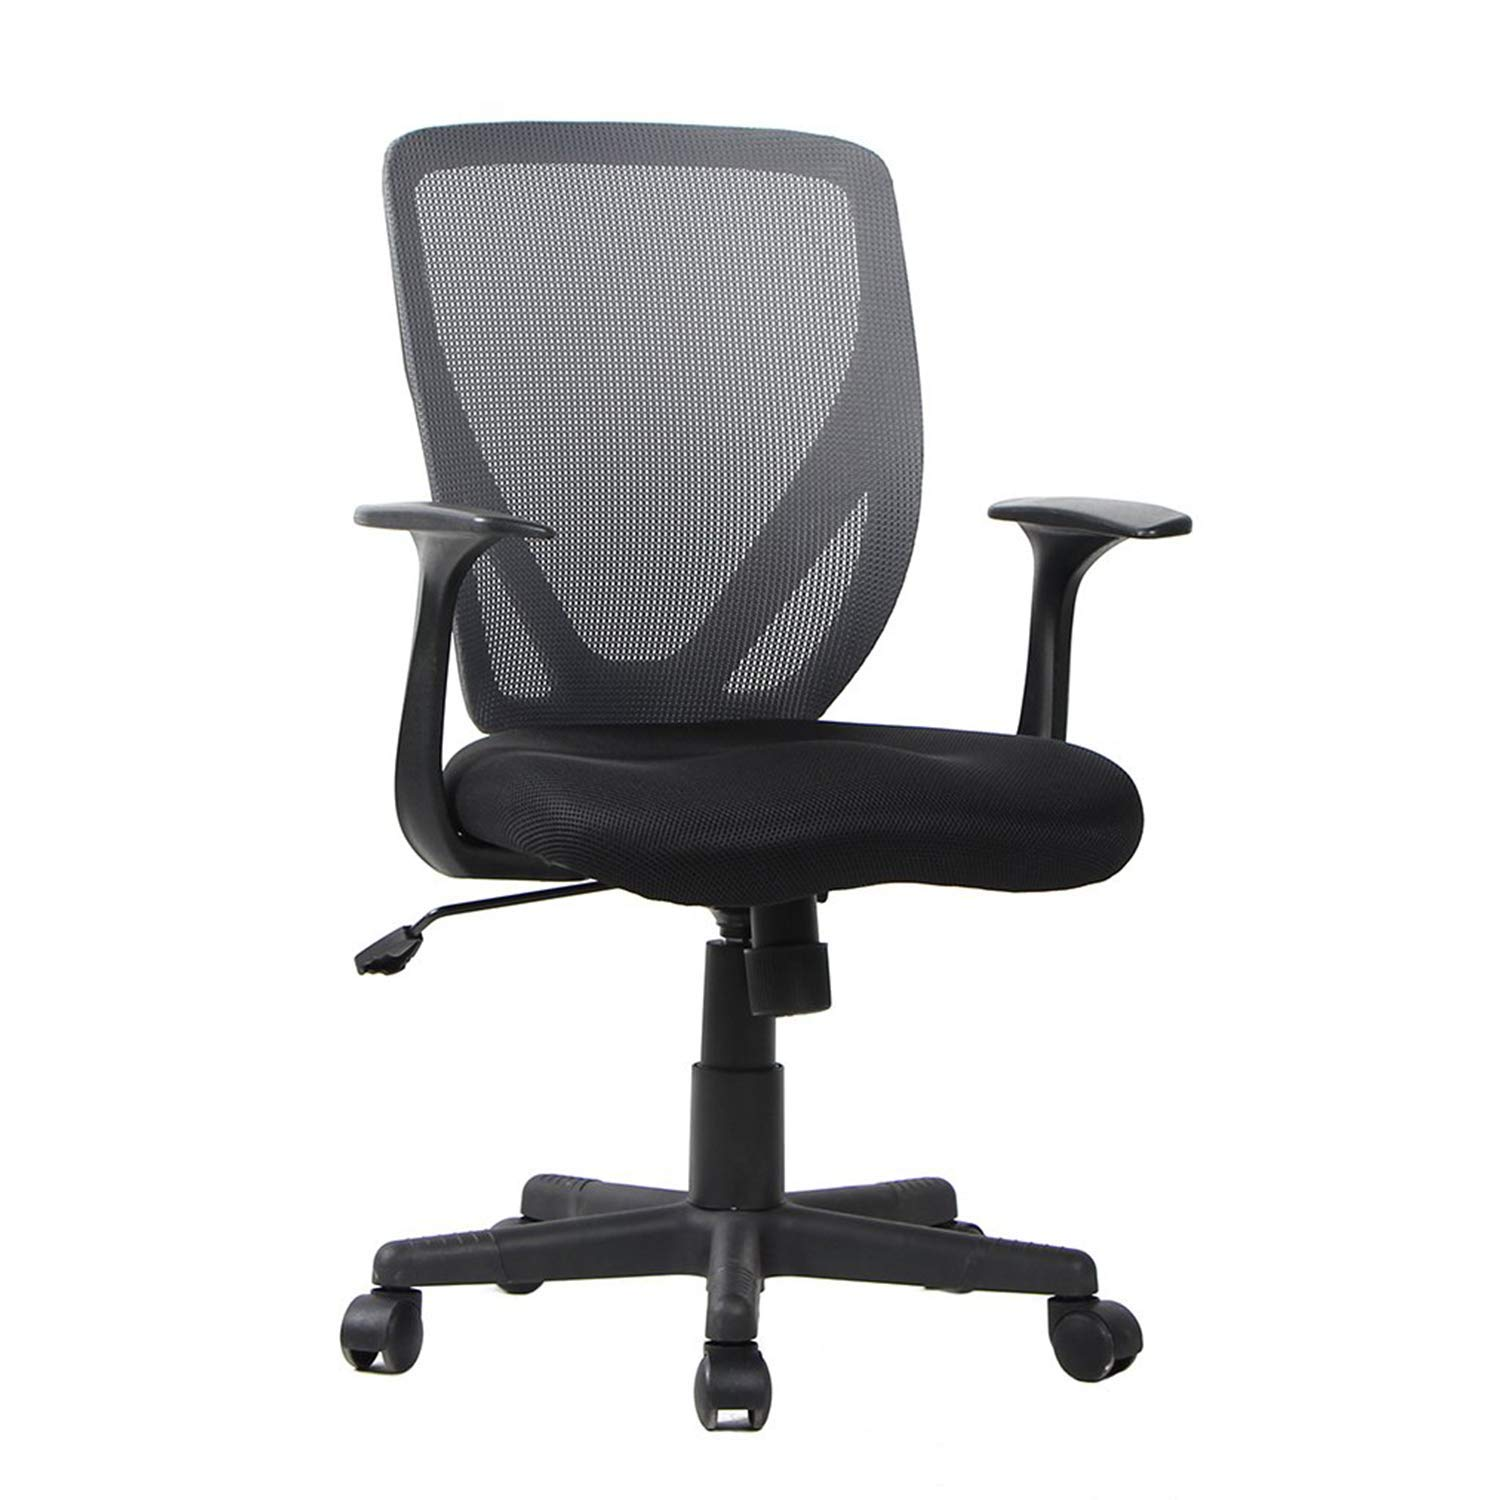 Smugdesk Ergonomic Mid Back Breathable Mesh Office Computer Desk Chair with Lumbar Support Black